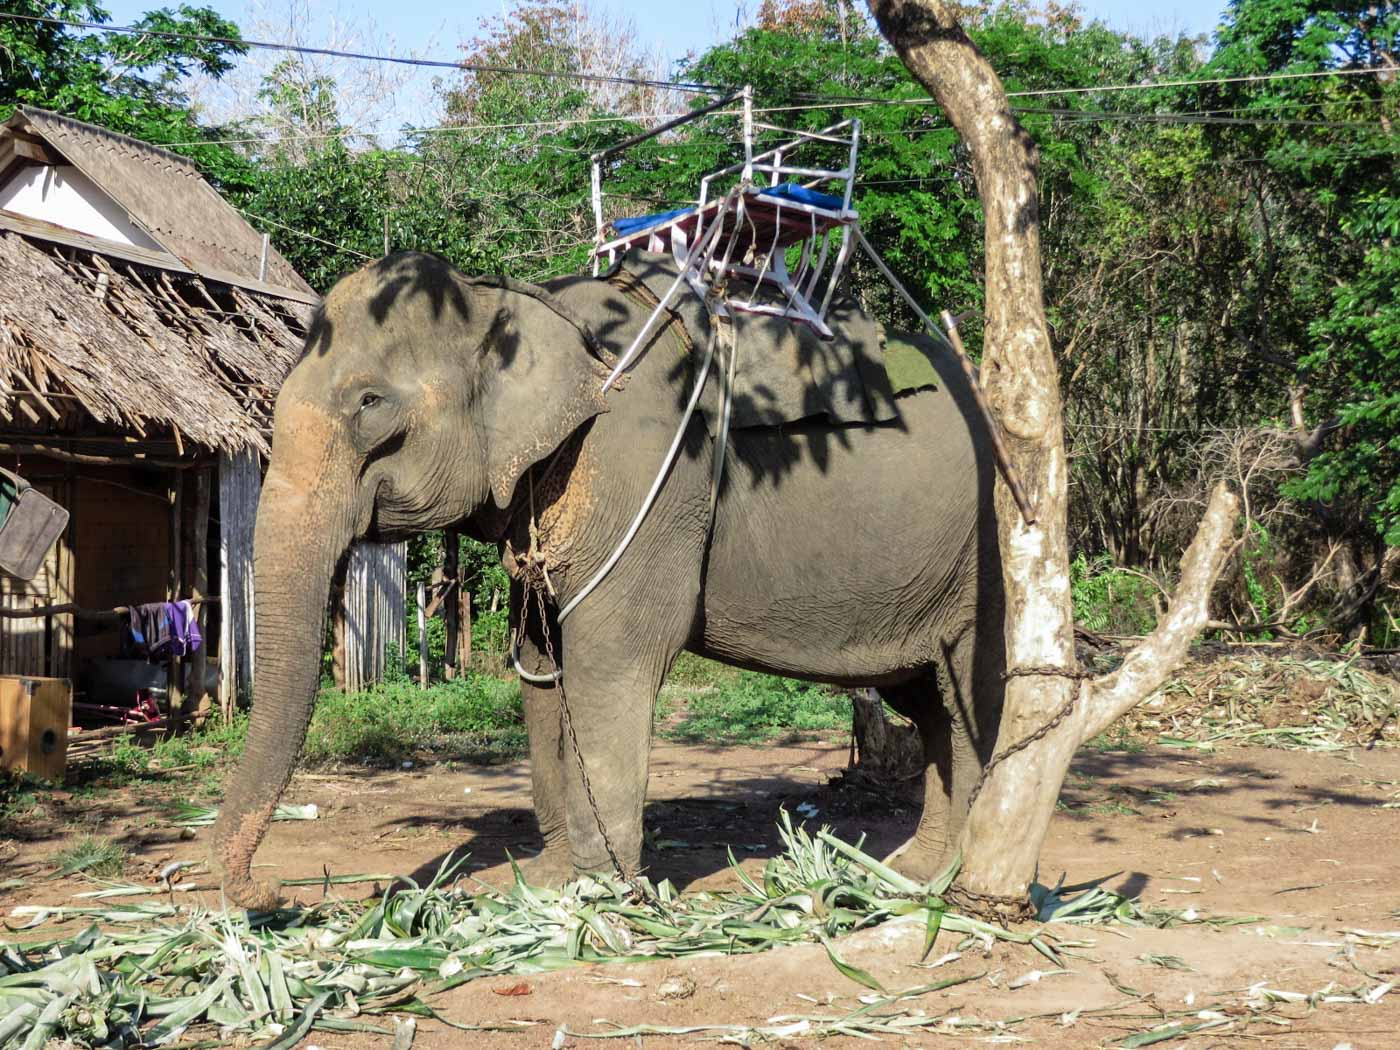 an elephant chained to a tree with a seat on his back